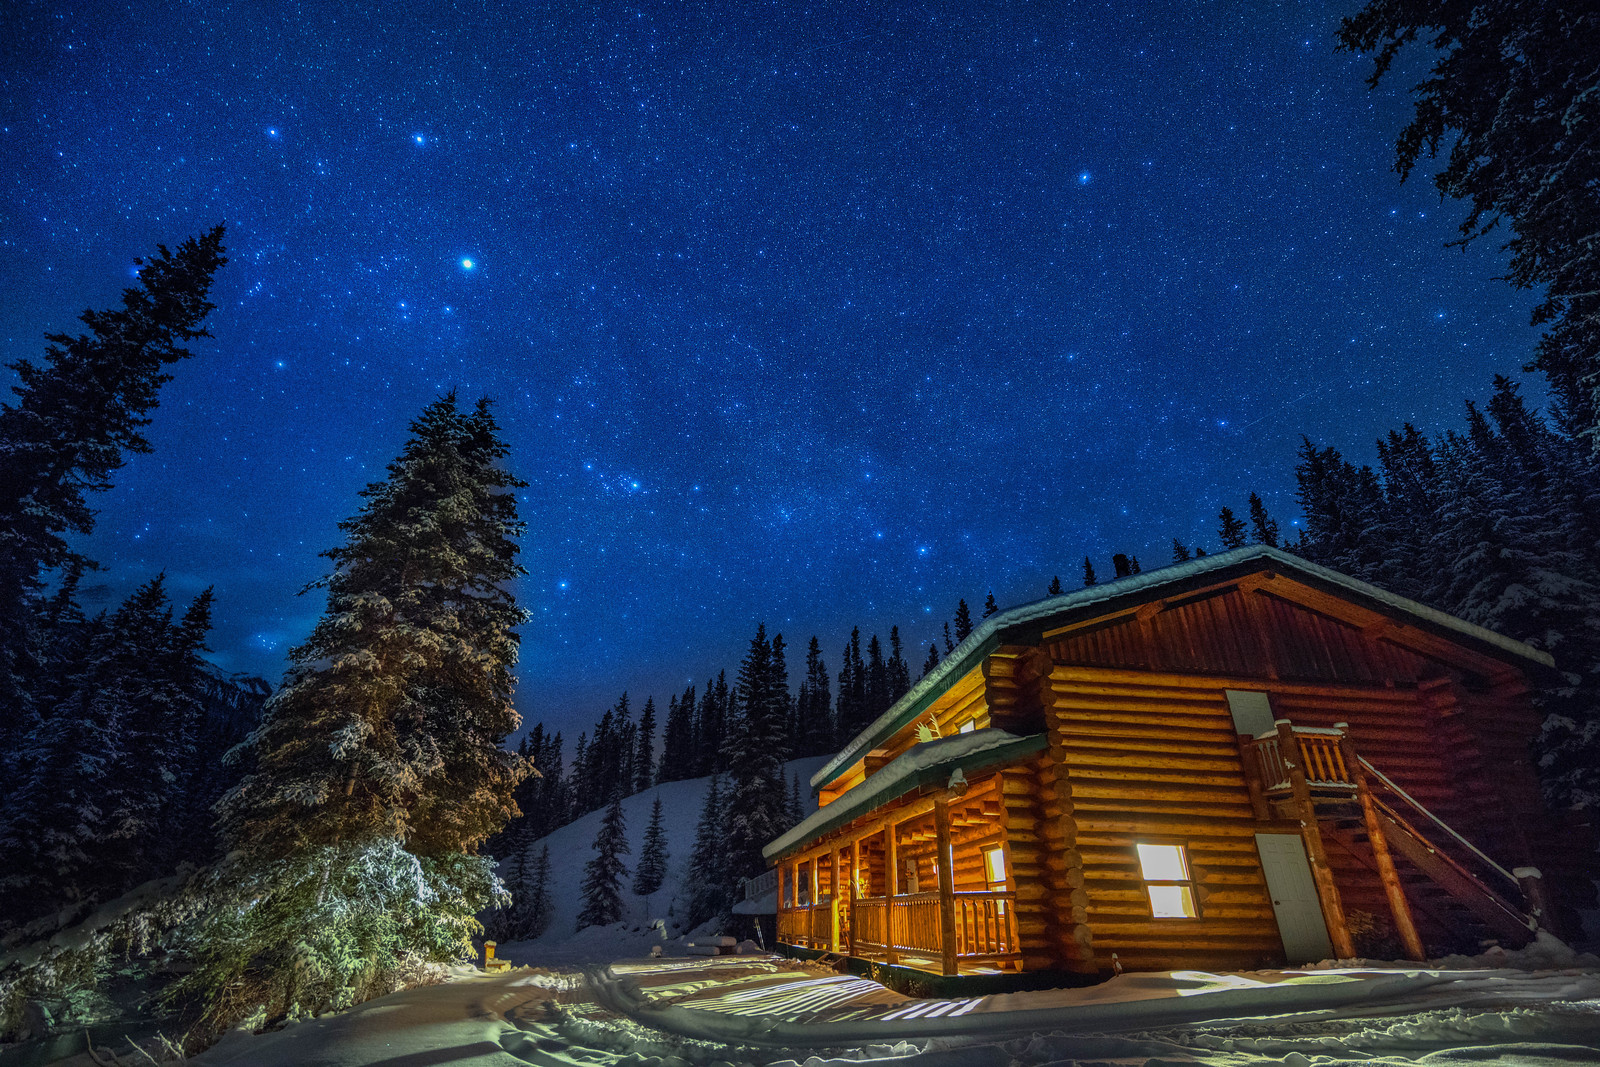 Night Skies at Sundance Back Country Lodge in Banff National Park, Alberta